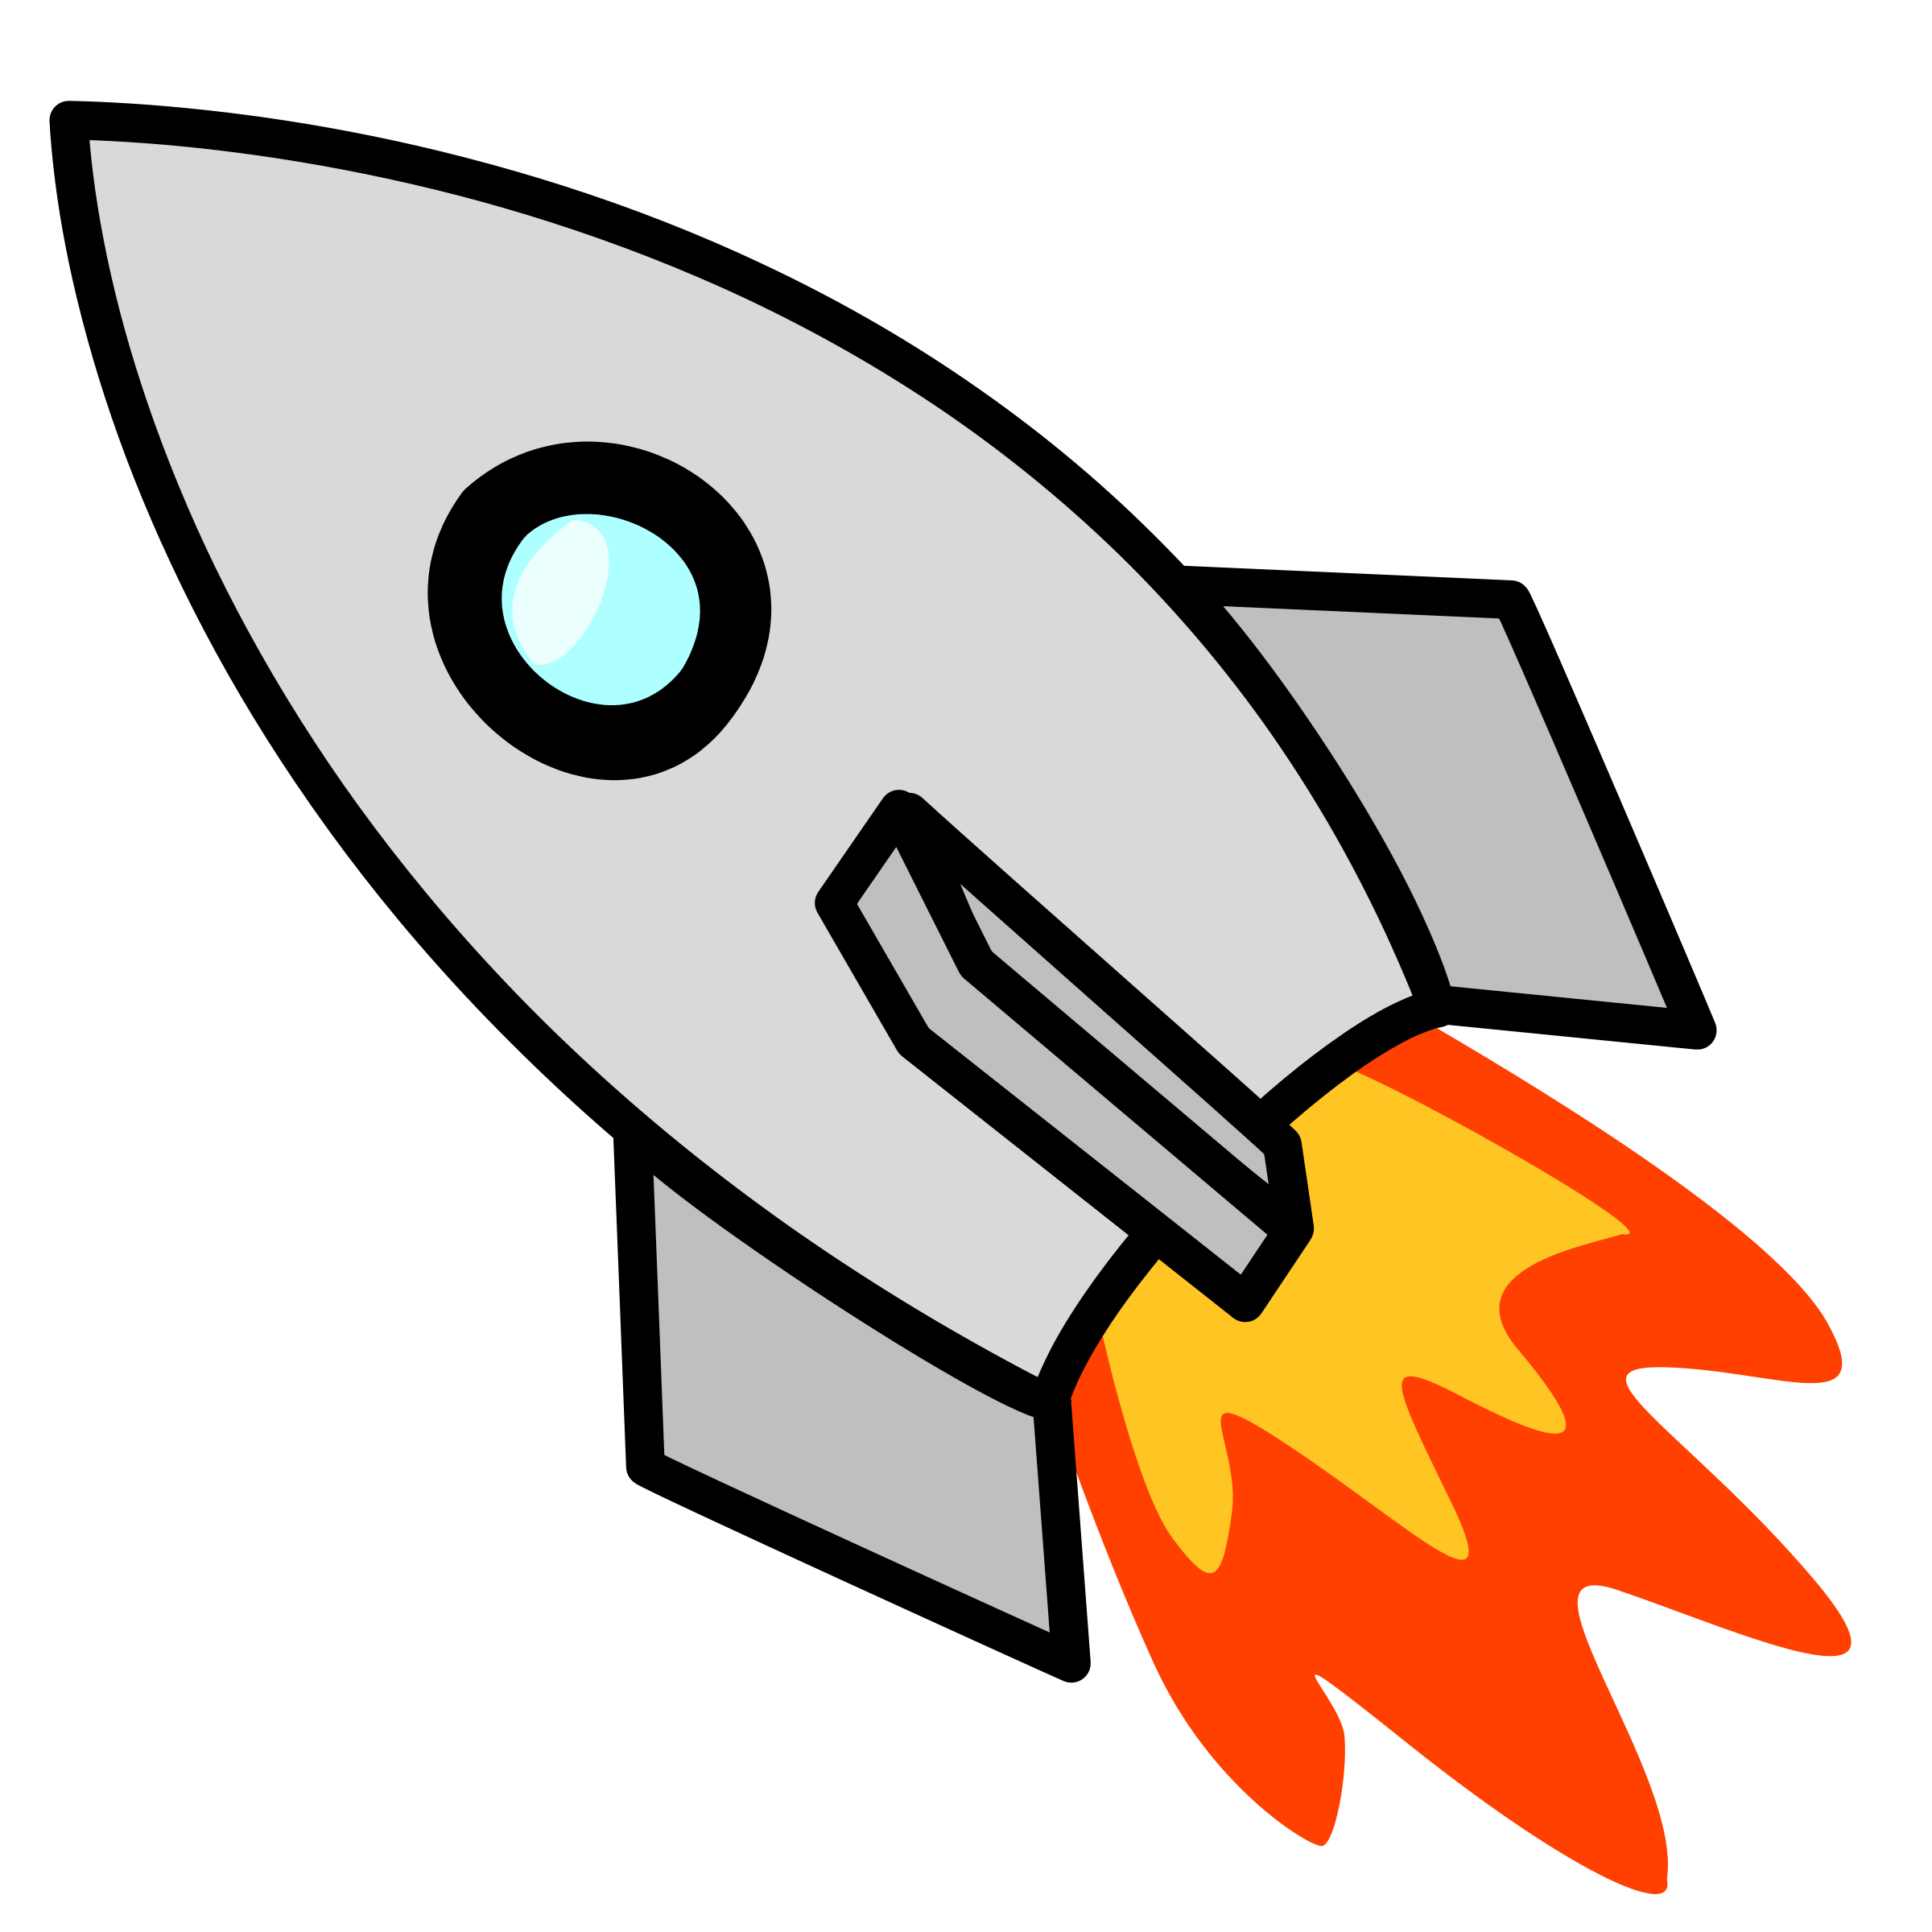 Clipart Of Rocket Ship Shapes Clipart Best